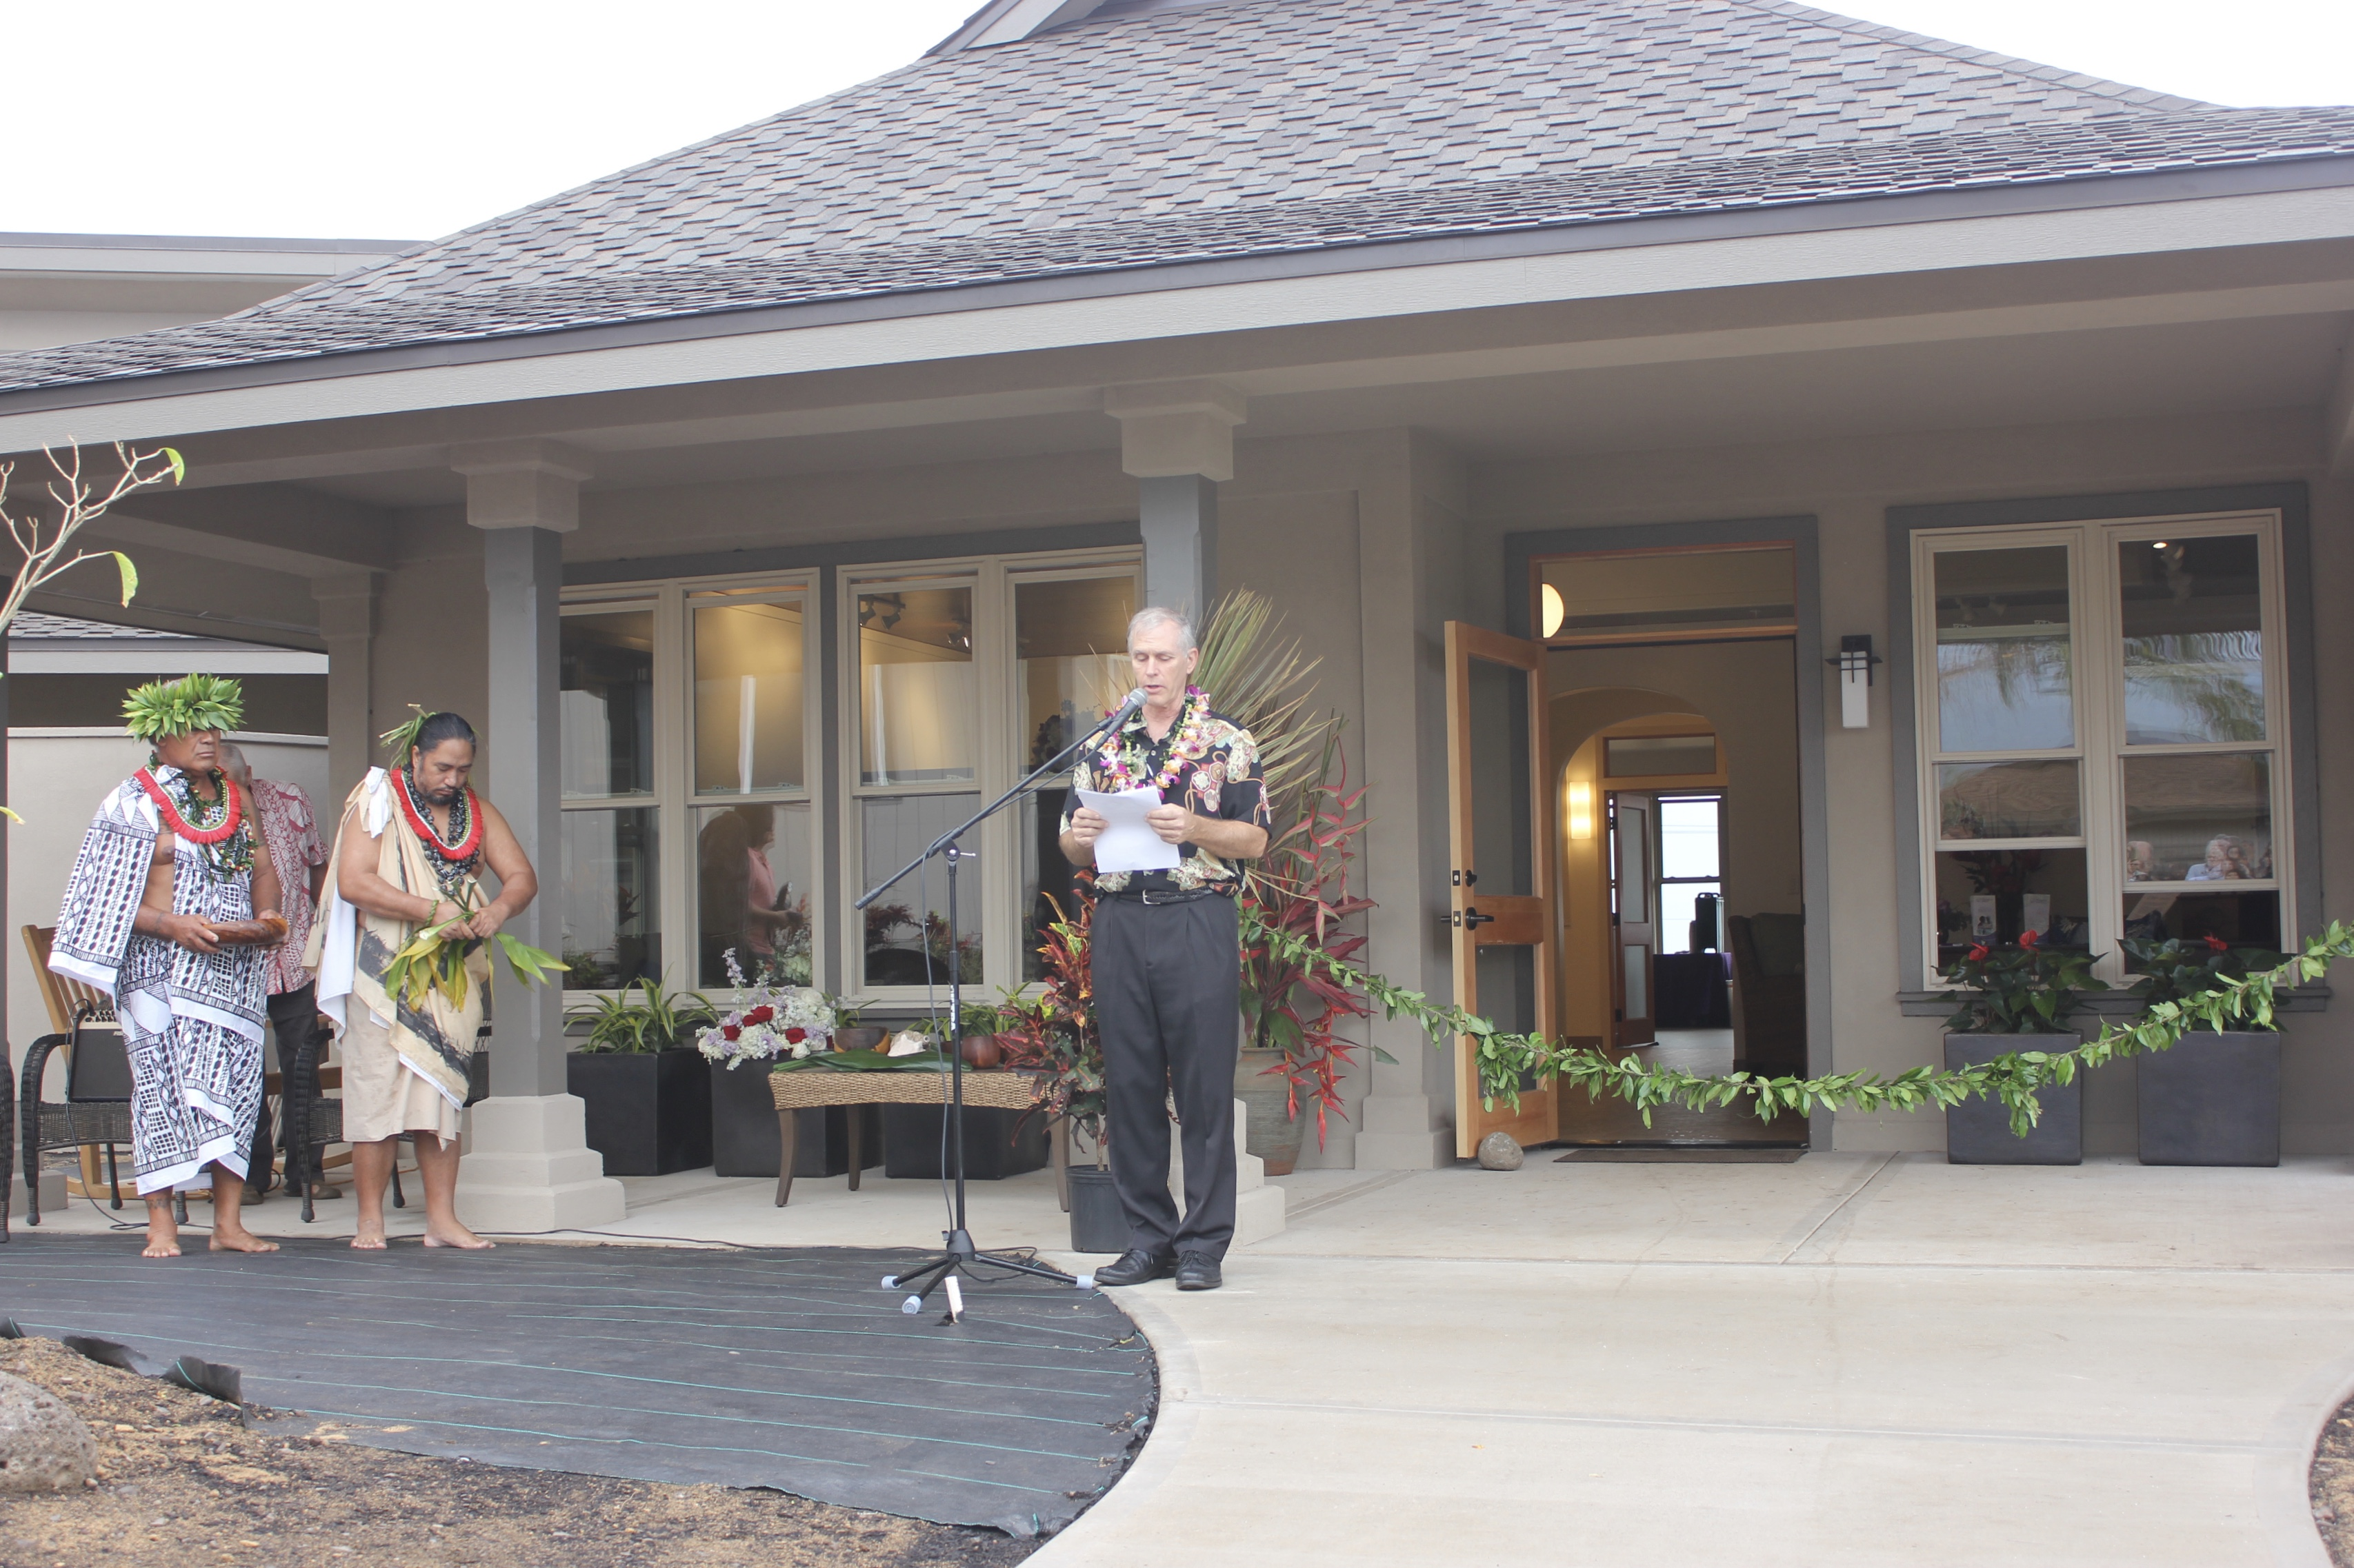 Greg LaGoy, Executive Director of Hospice Maui speaks at the Opening blessing event for Hospice Maui Hale. PC: 12.1.16 Astrid Grupenhoff